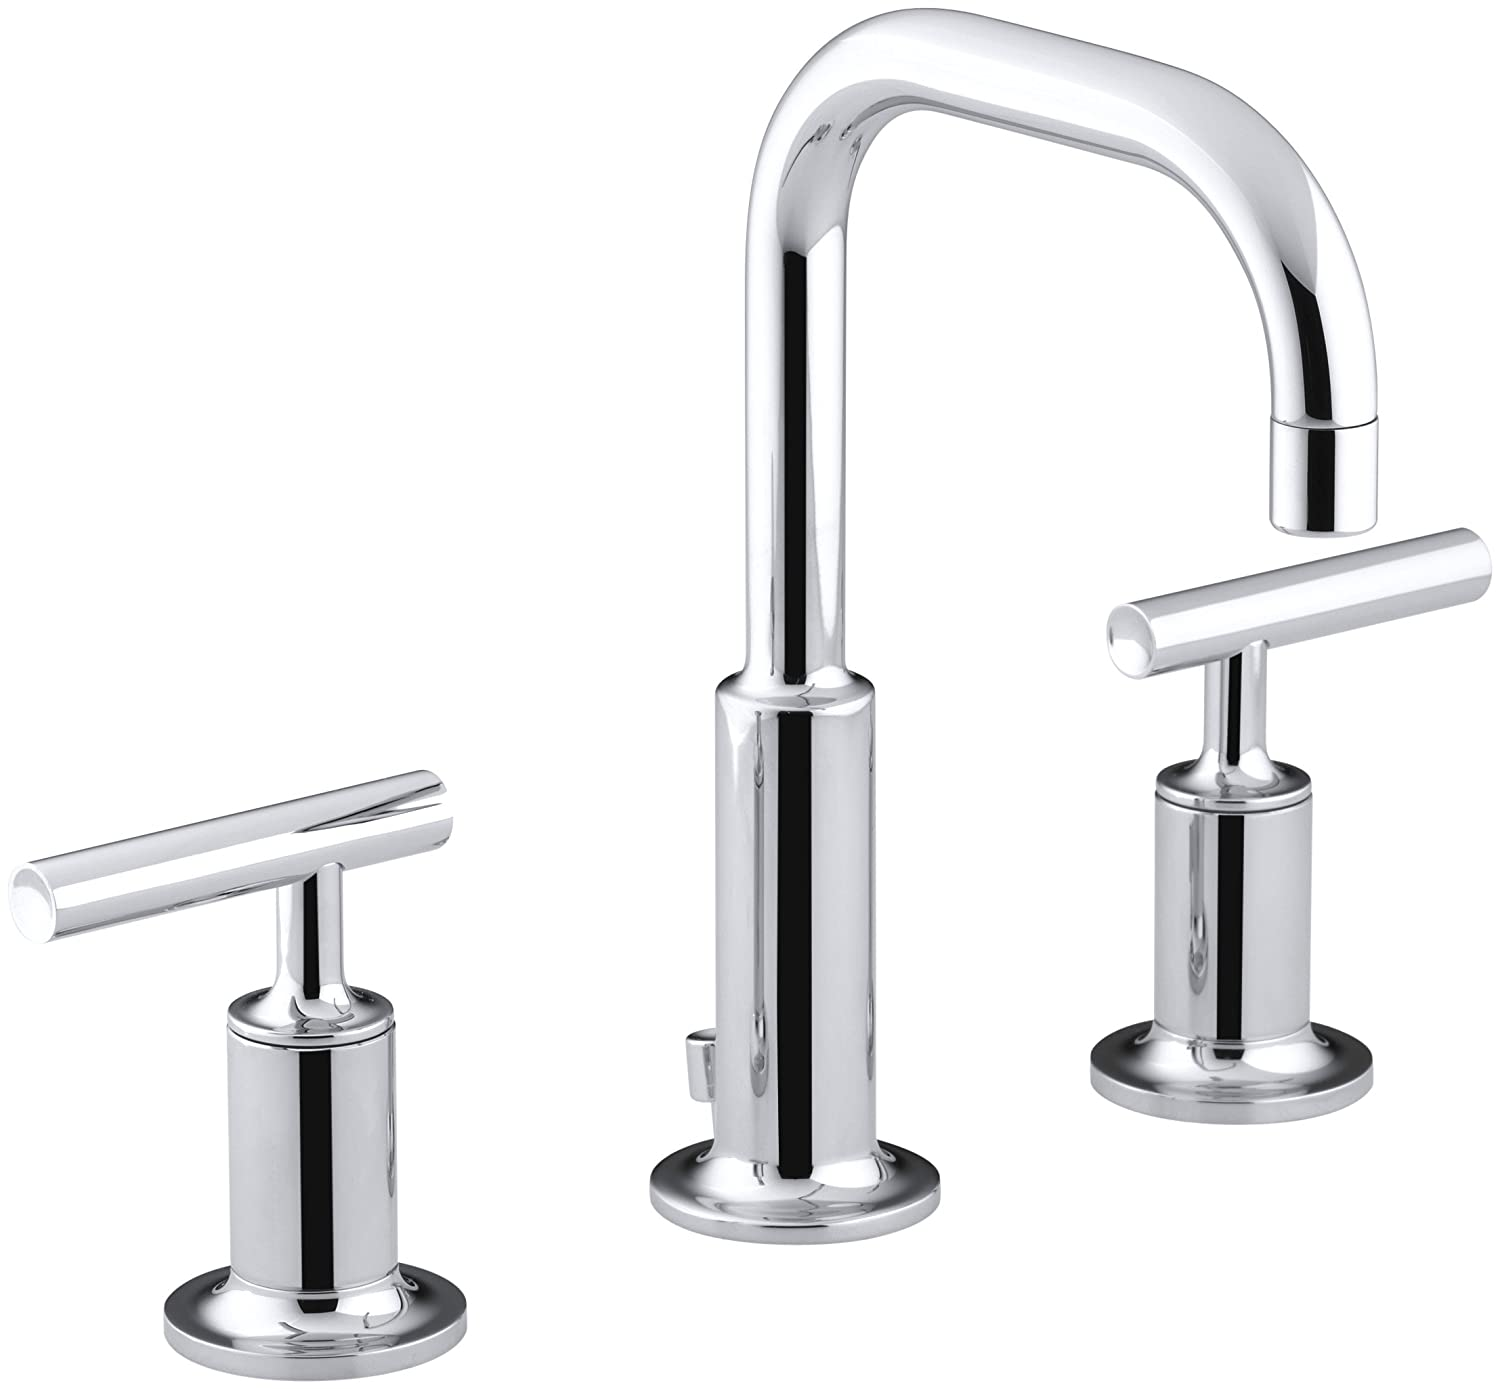 townsend lovely new american photos htsrec faucets faucet of bathroom standard com chrome arc widespread high